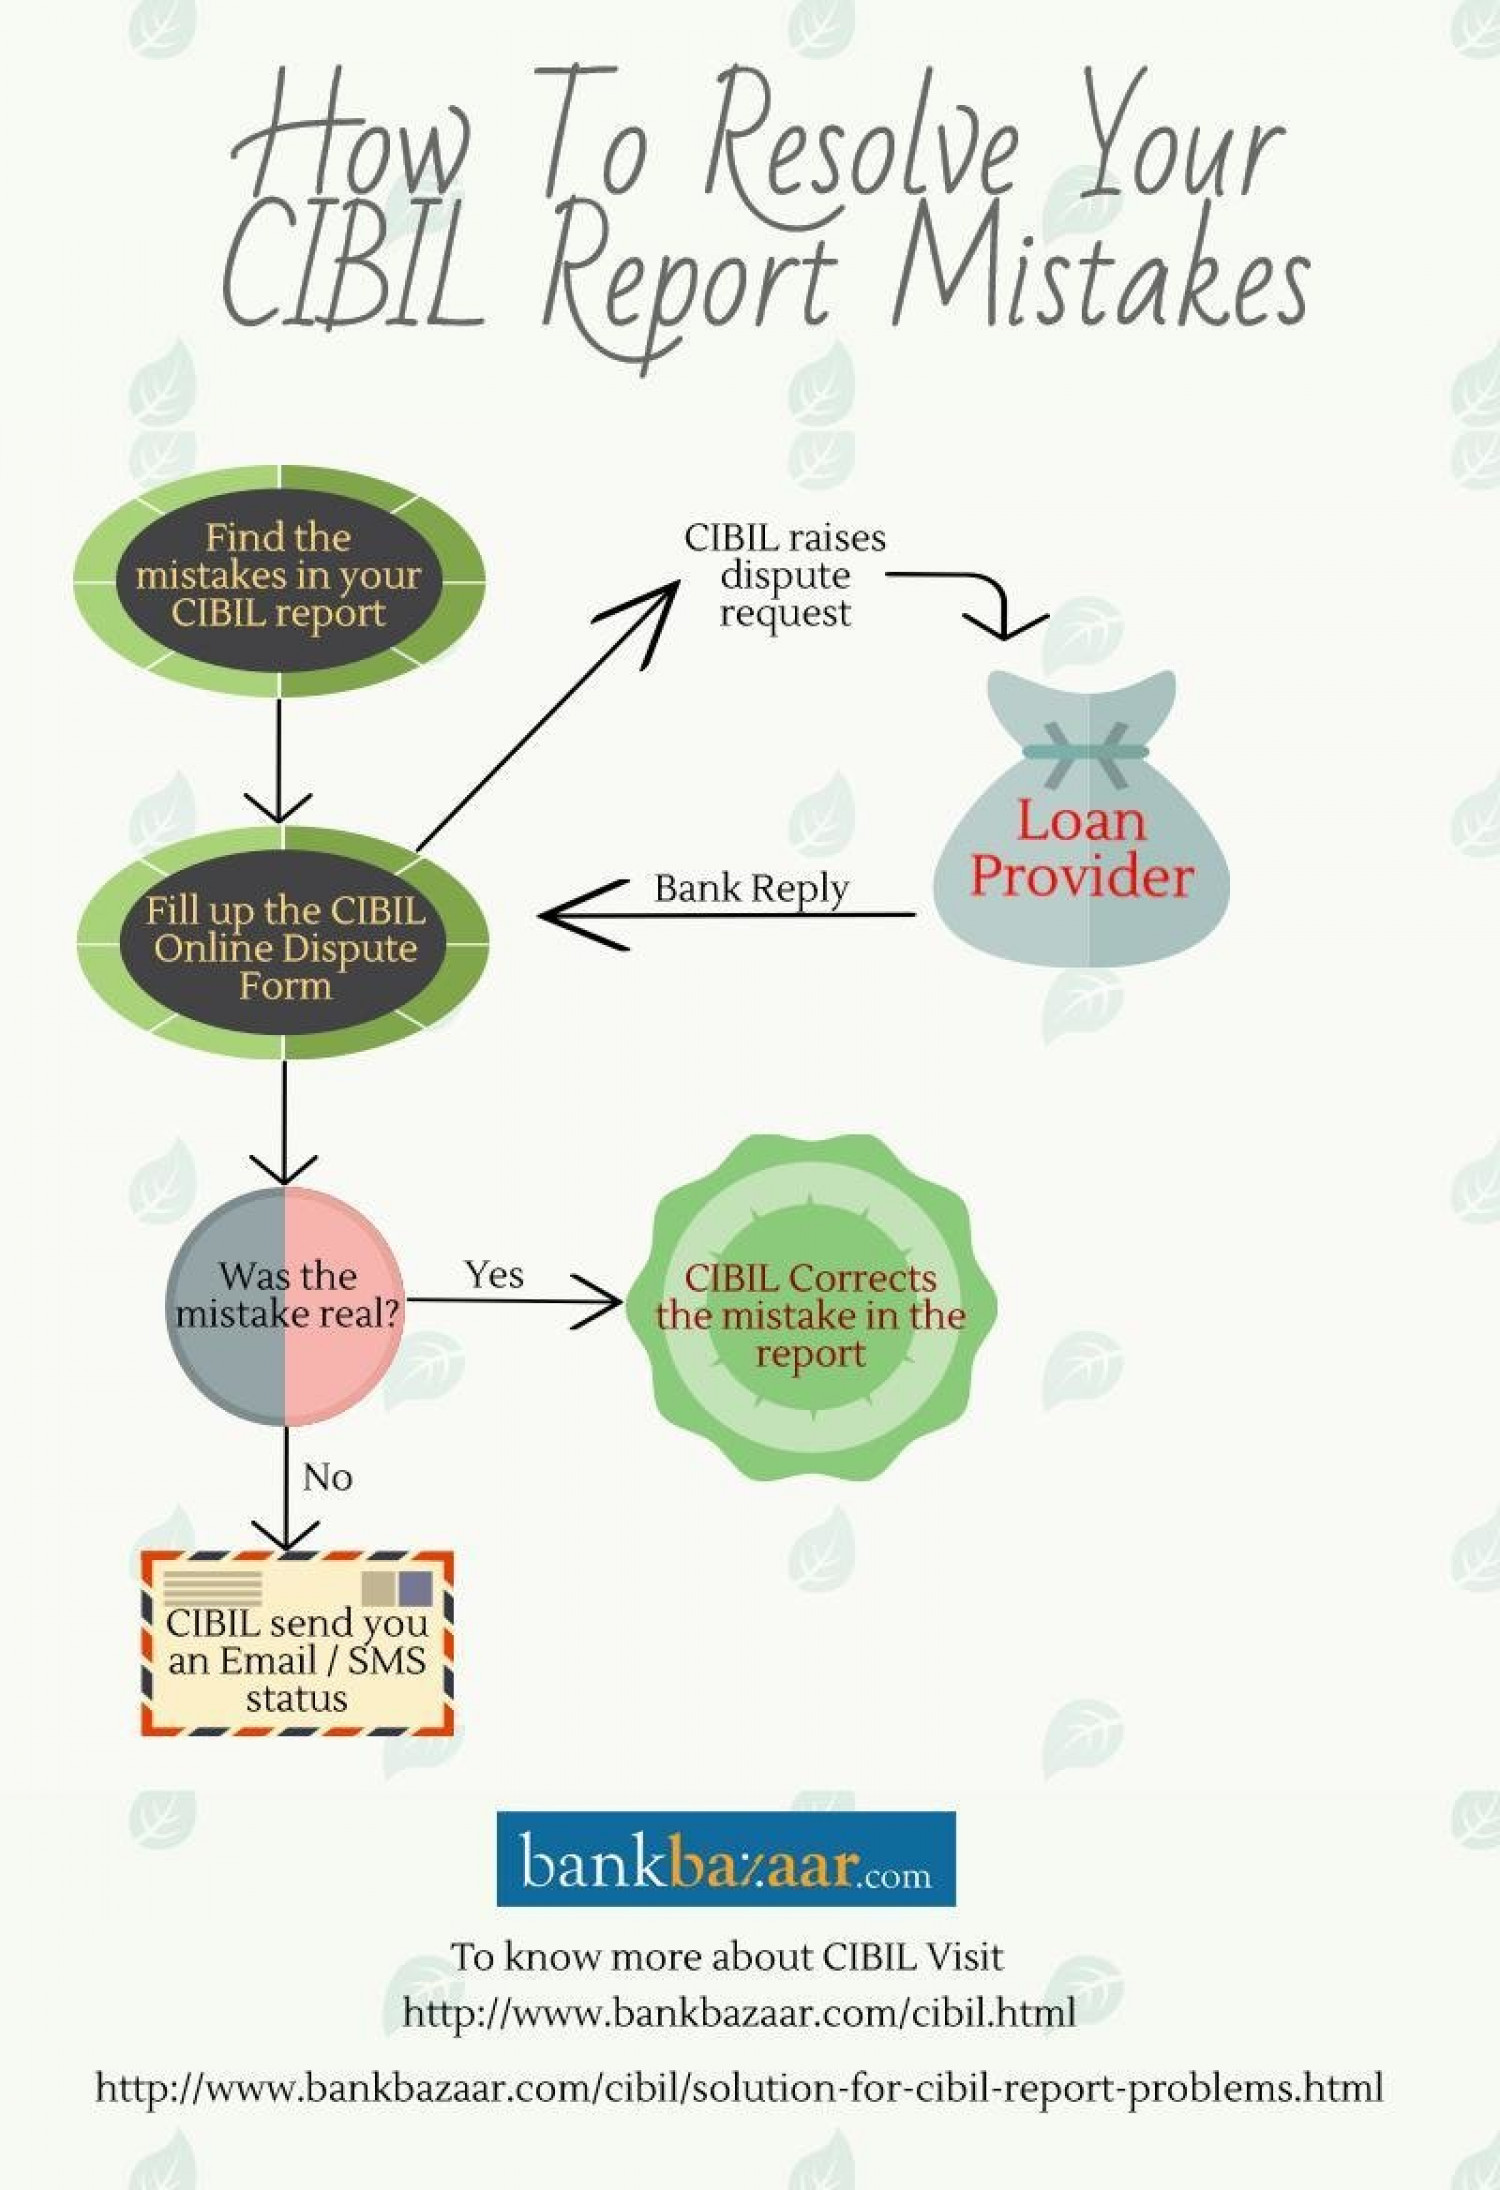 How to resolve your CIBIL Report mistakes! Infographic